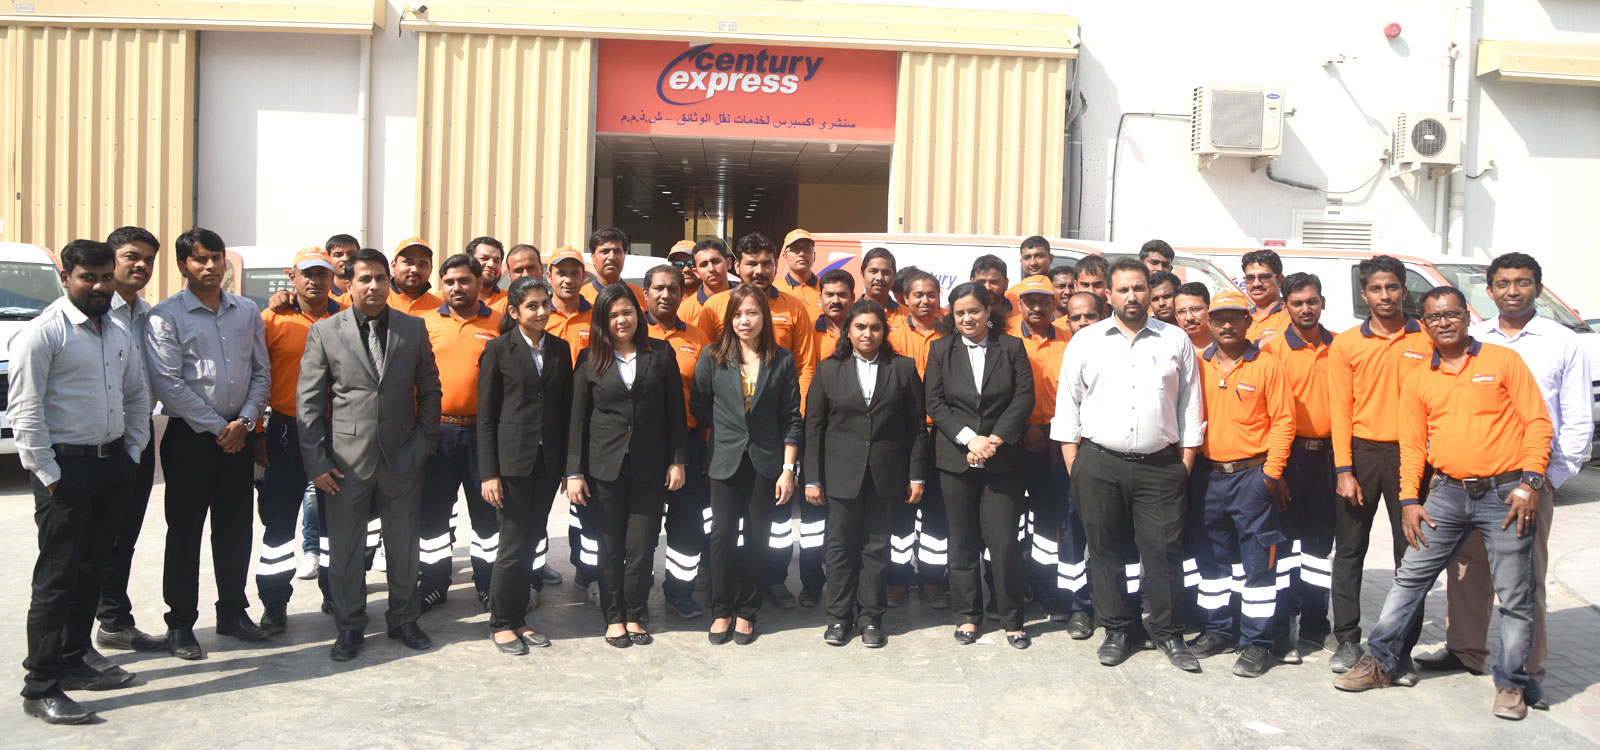 About | Century Express